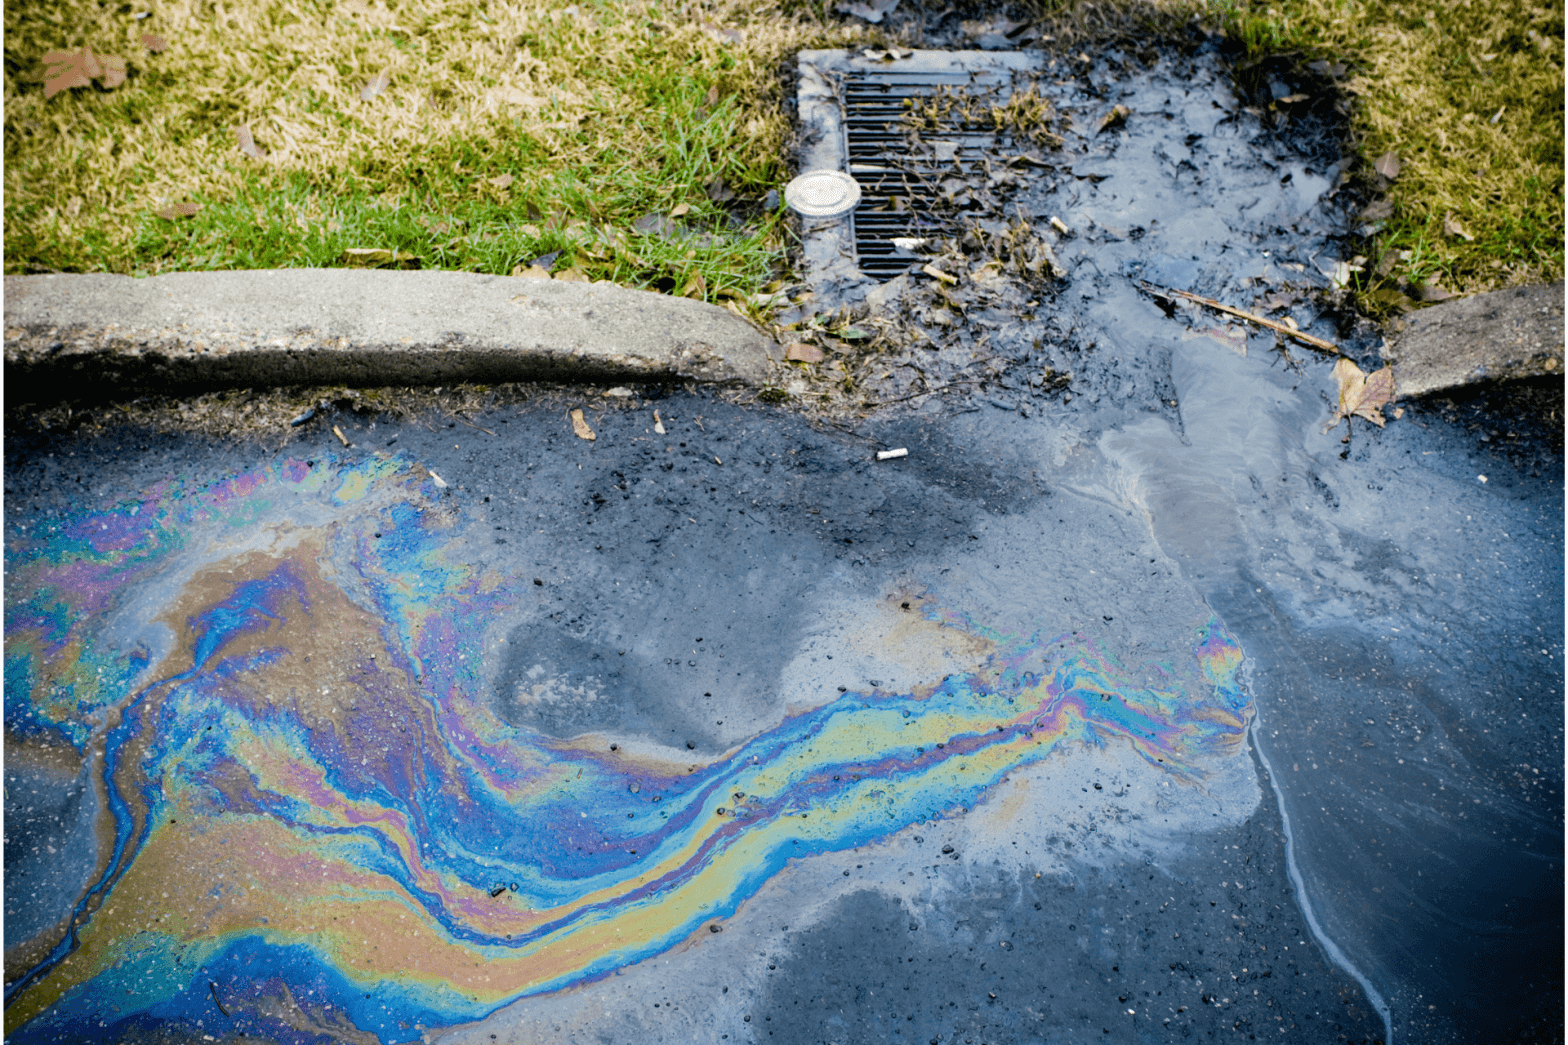 Close-up of an oil spill leading to a sewer grate